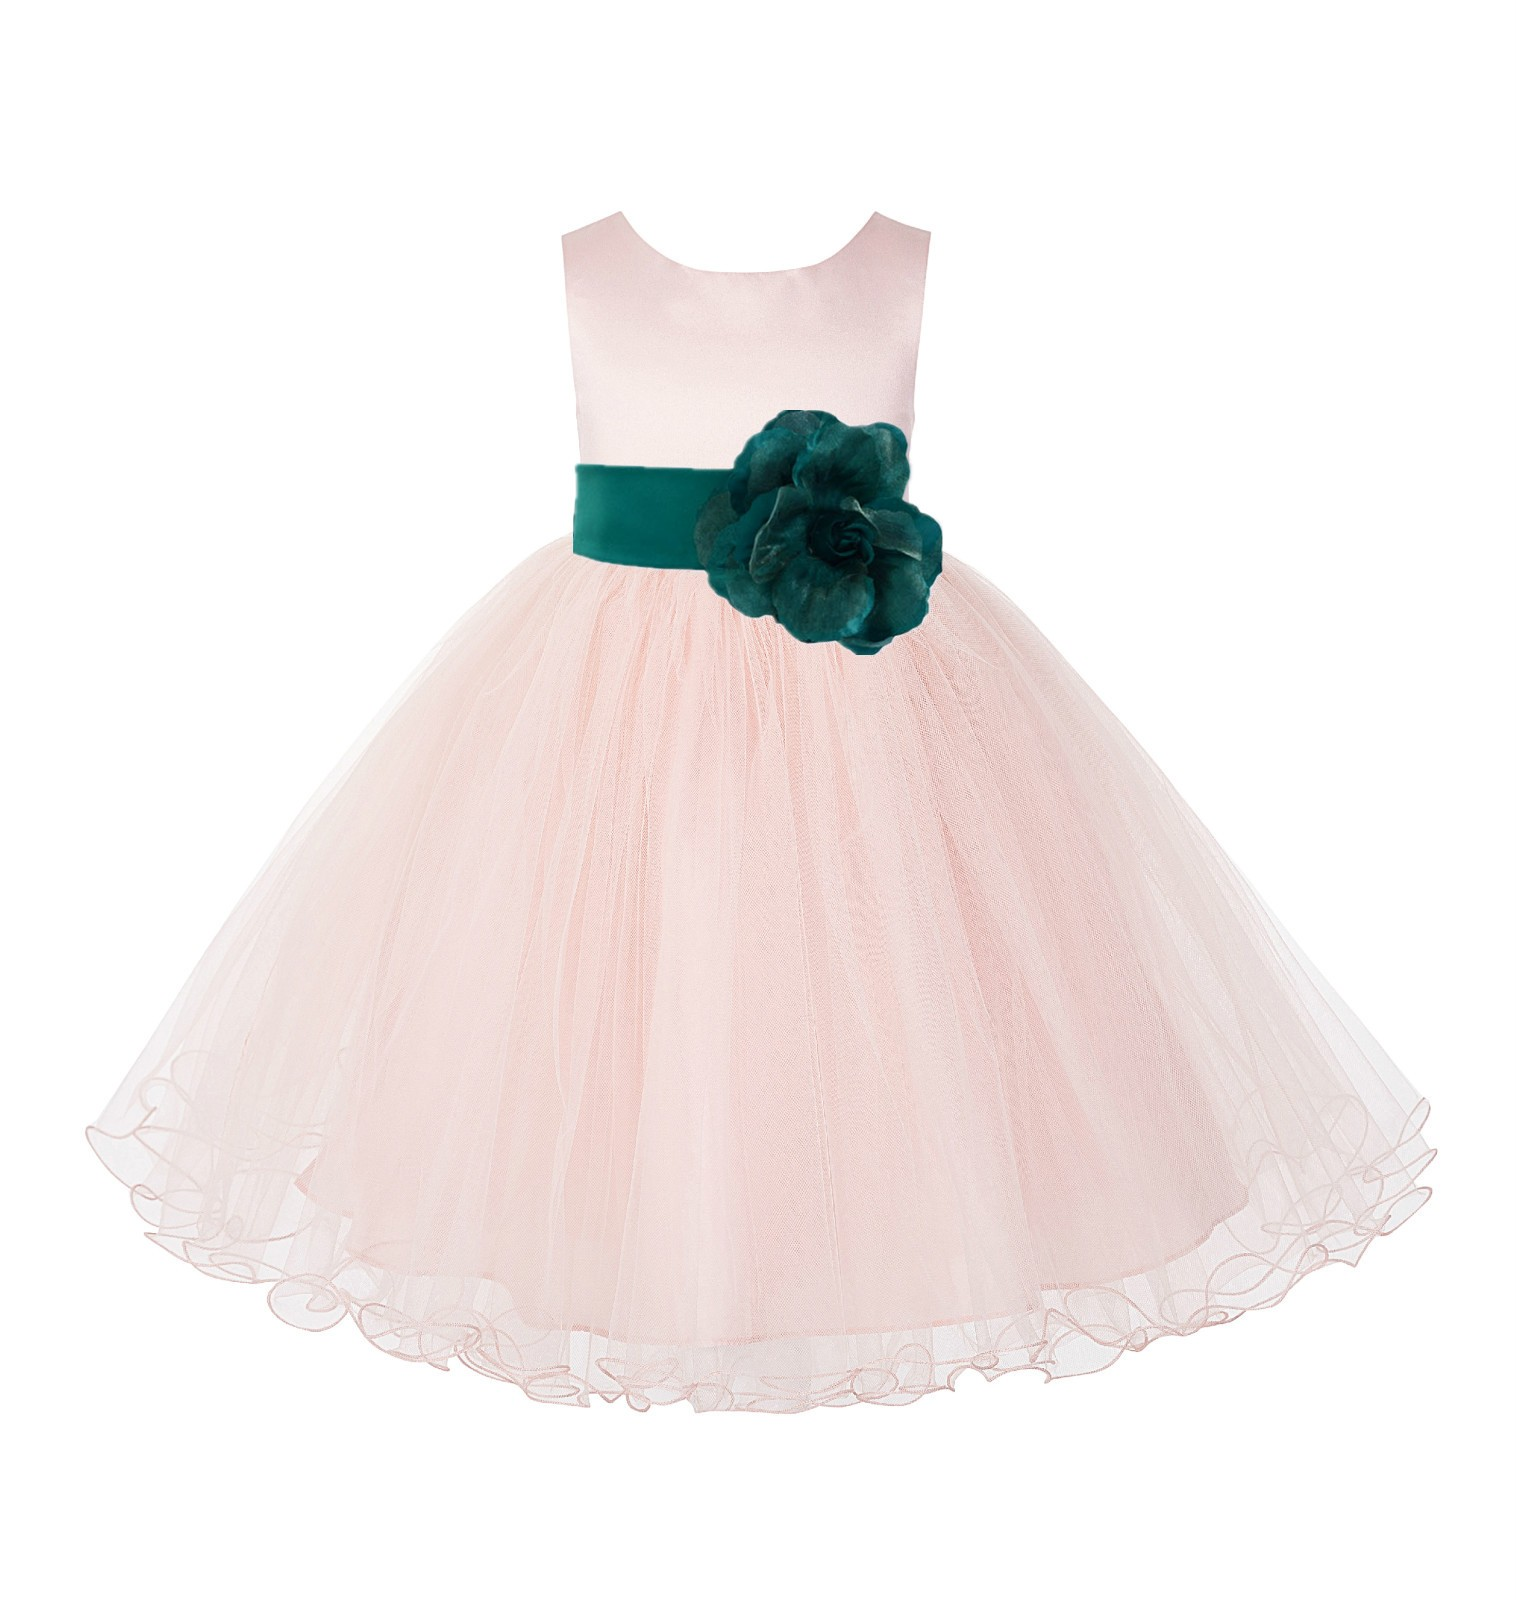 Blush Pink / Jade Tulle Rattail Edge Flower Girl Dress Pageant Recital 829S